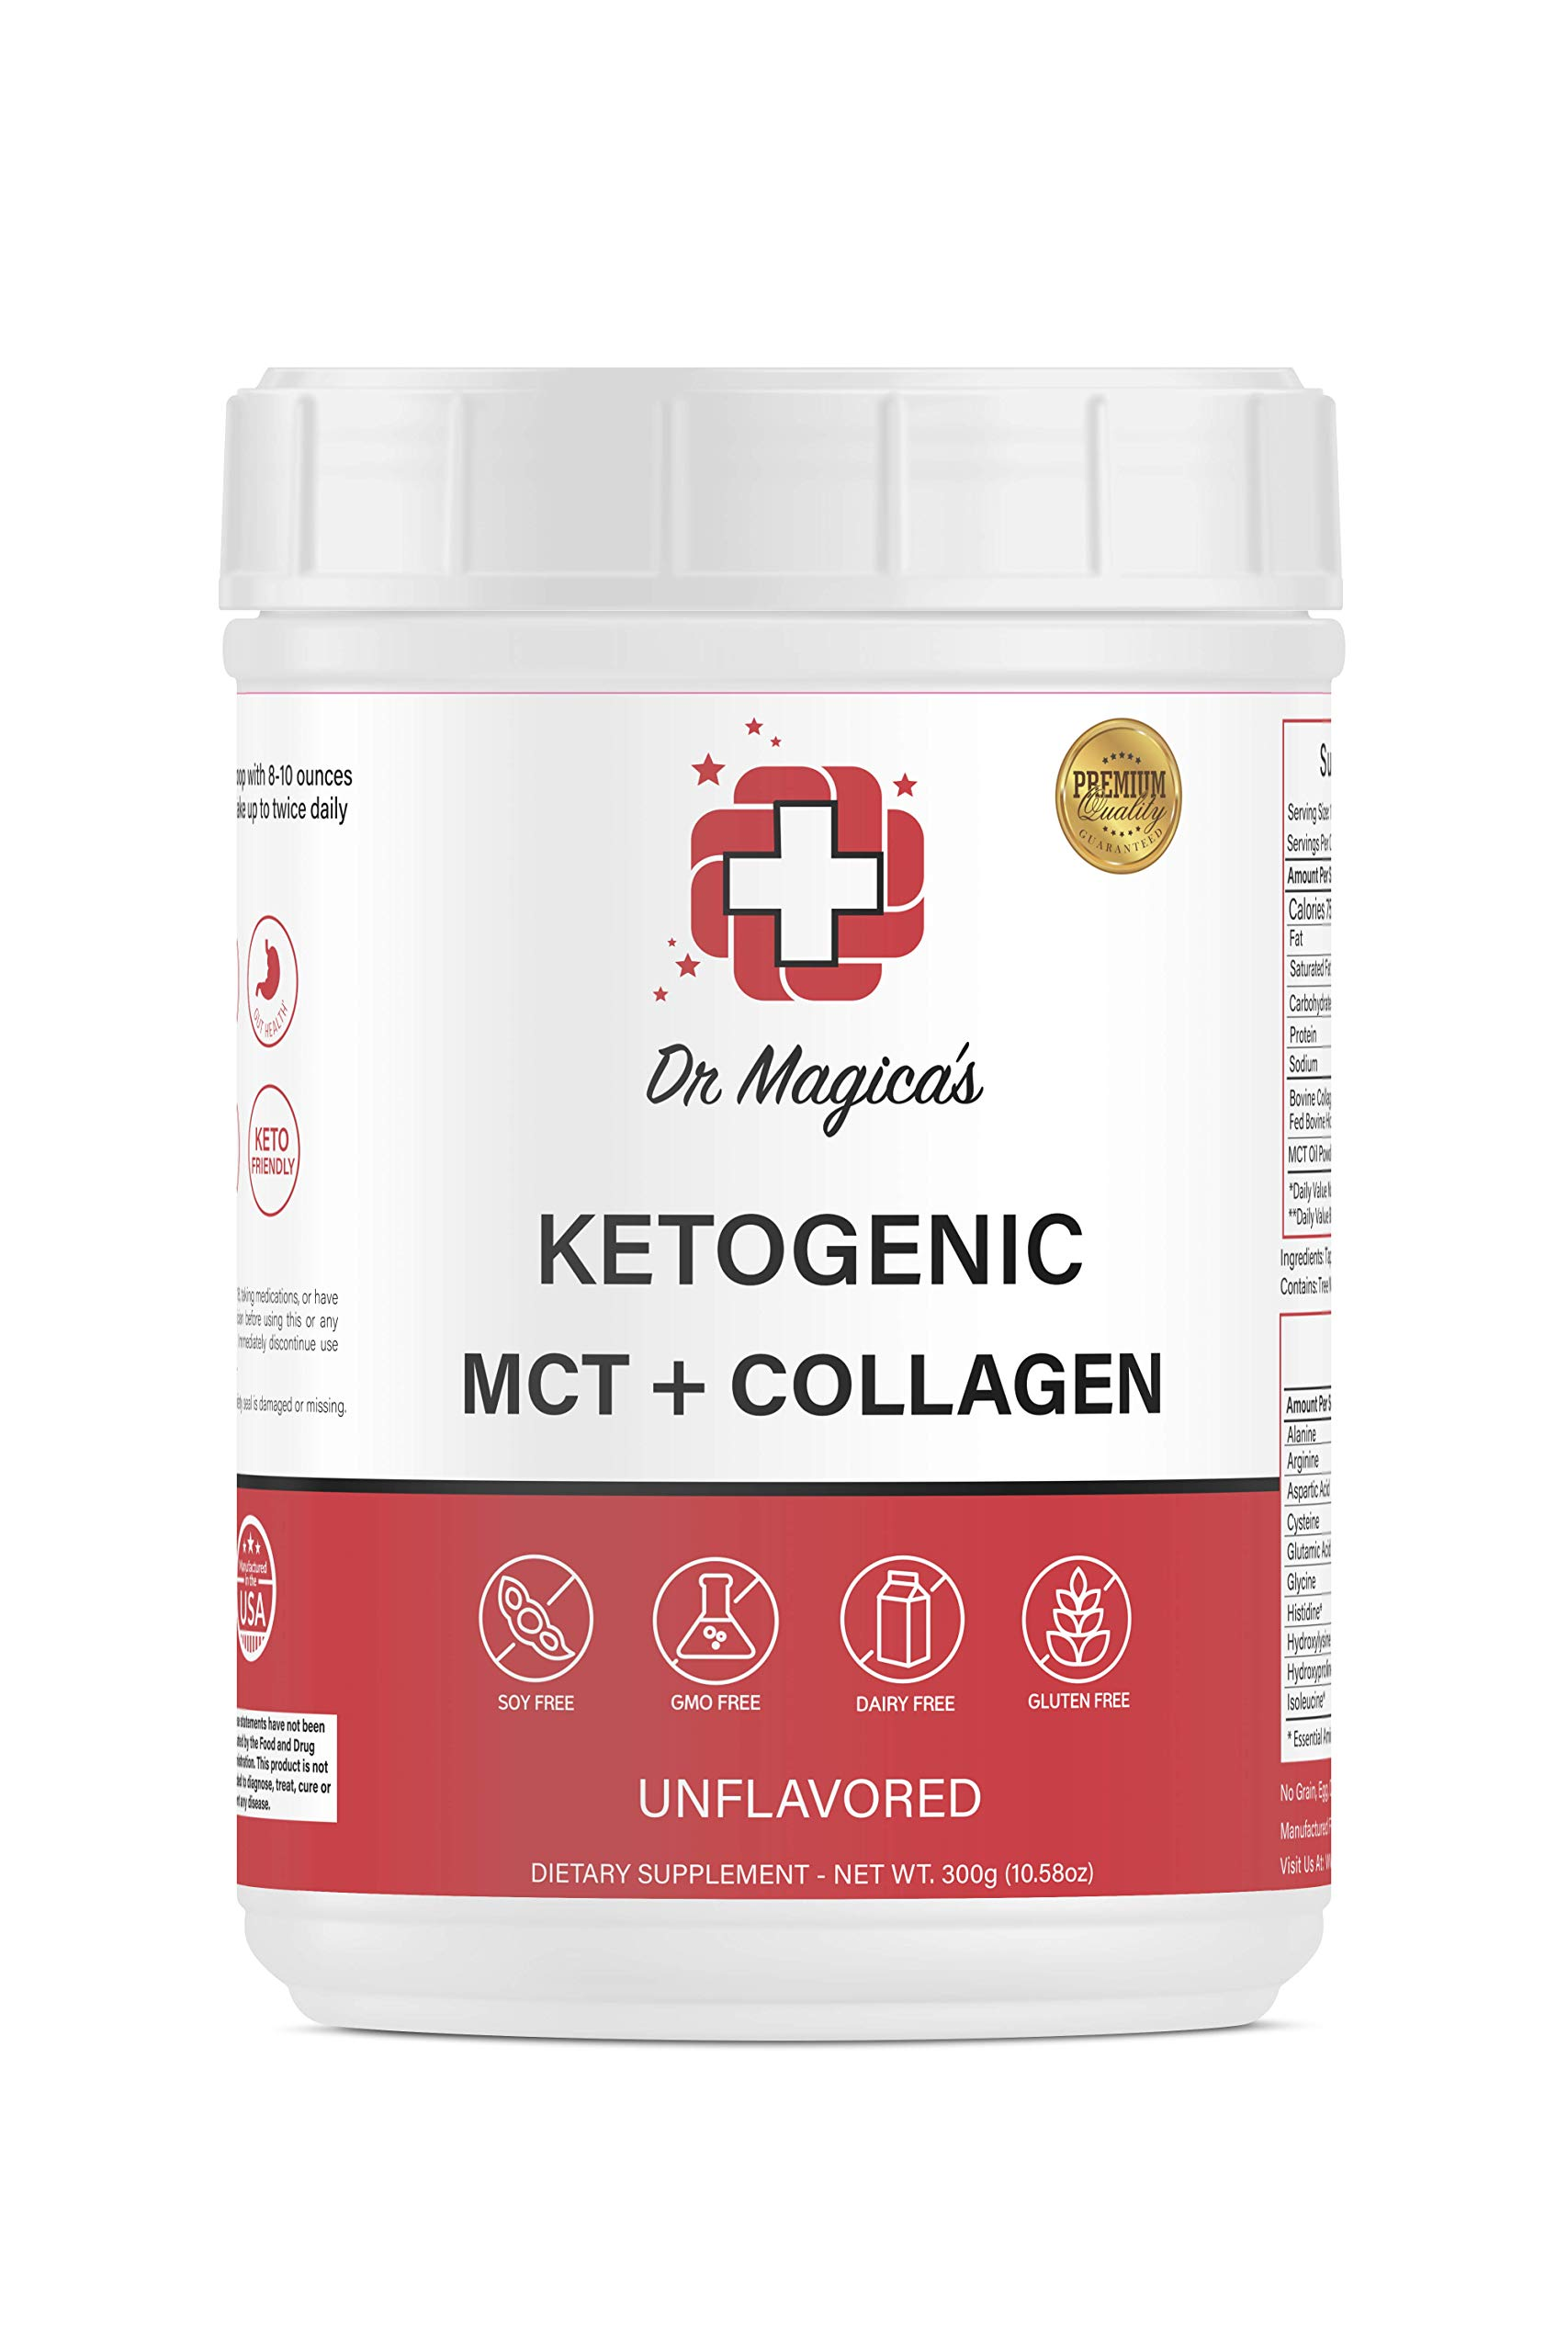 Dr Magica's Ketogenic MCT & Collagen Powder Combo for Keto Diet